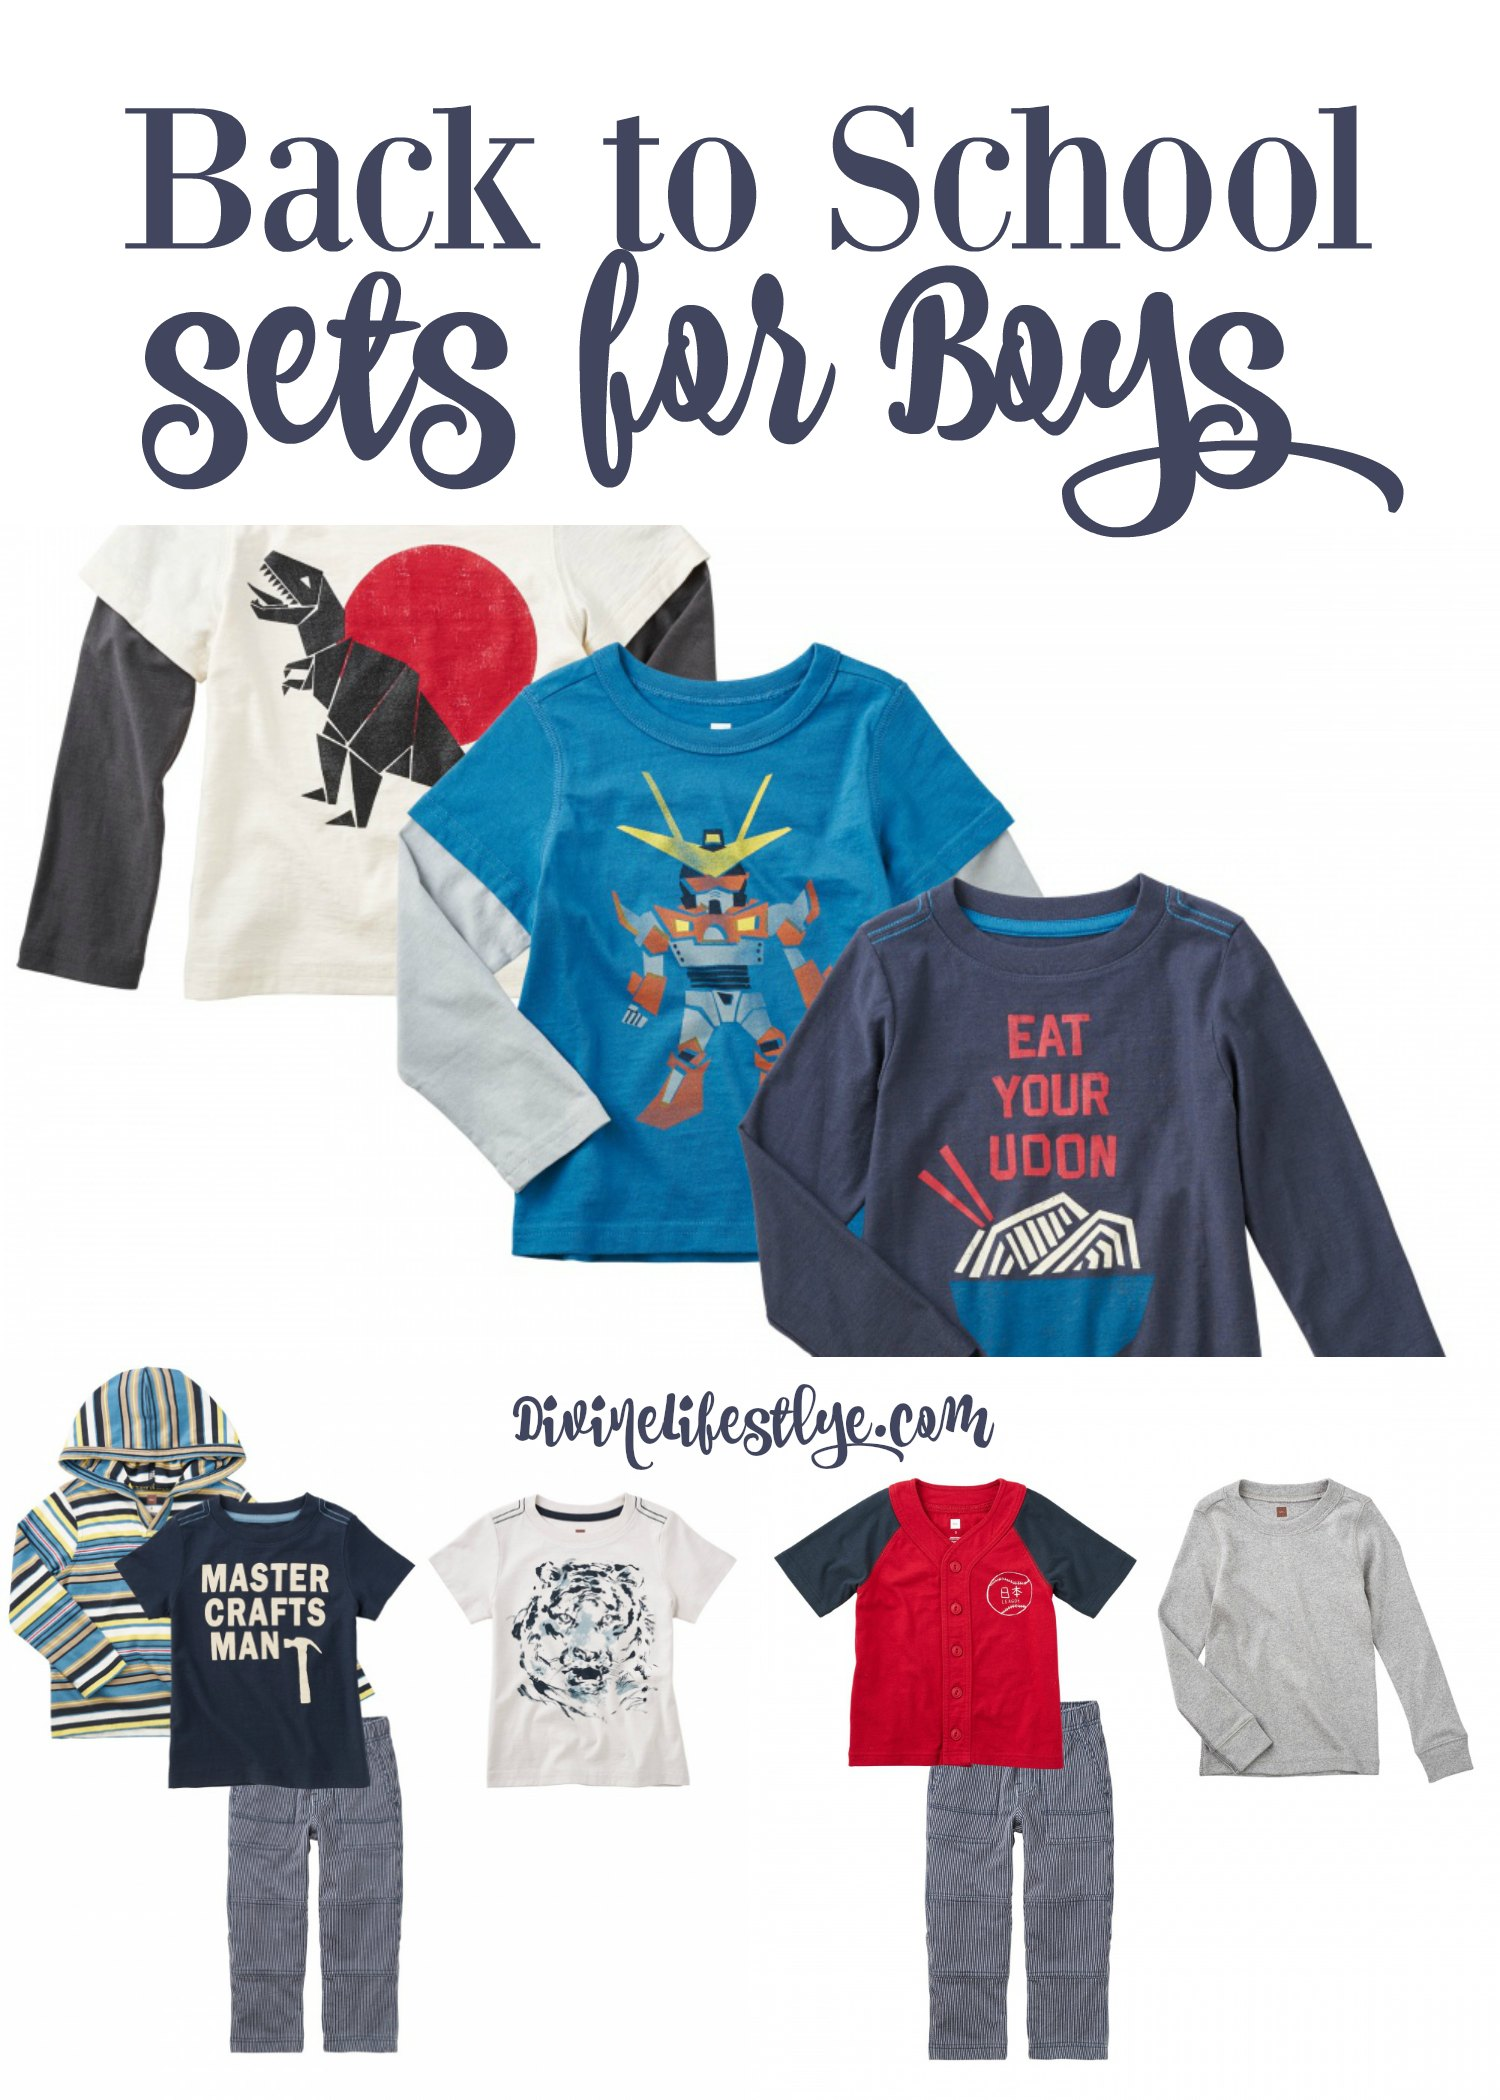 Tea Collection Back to School Sets for Boys